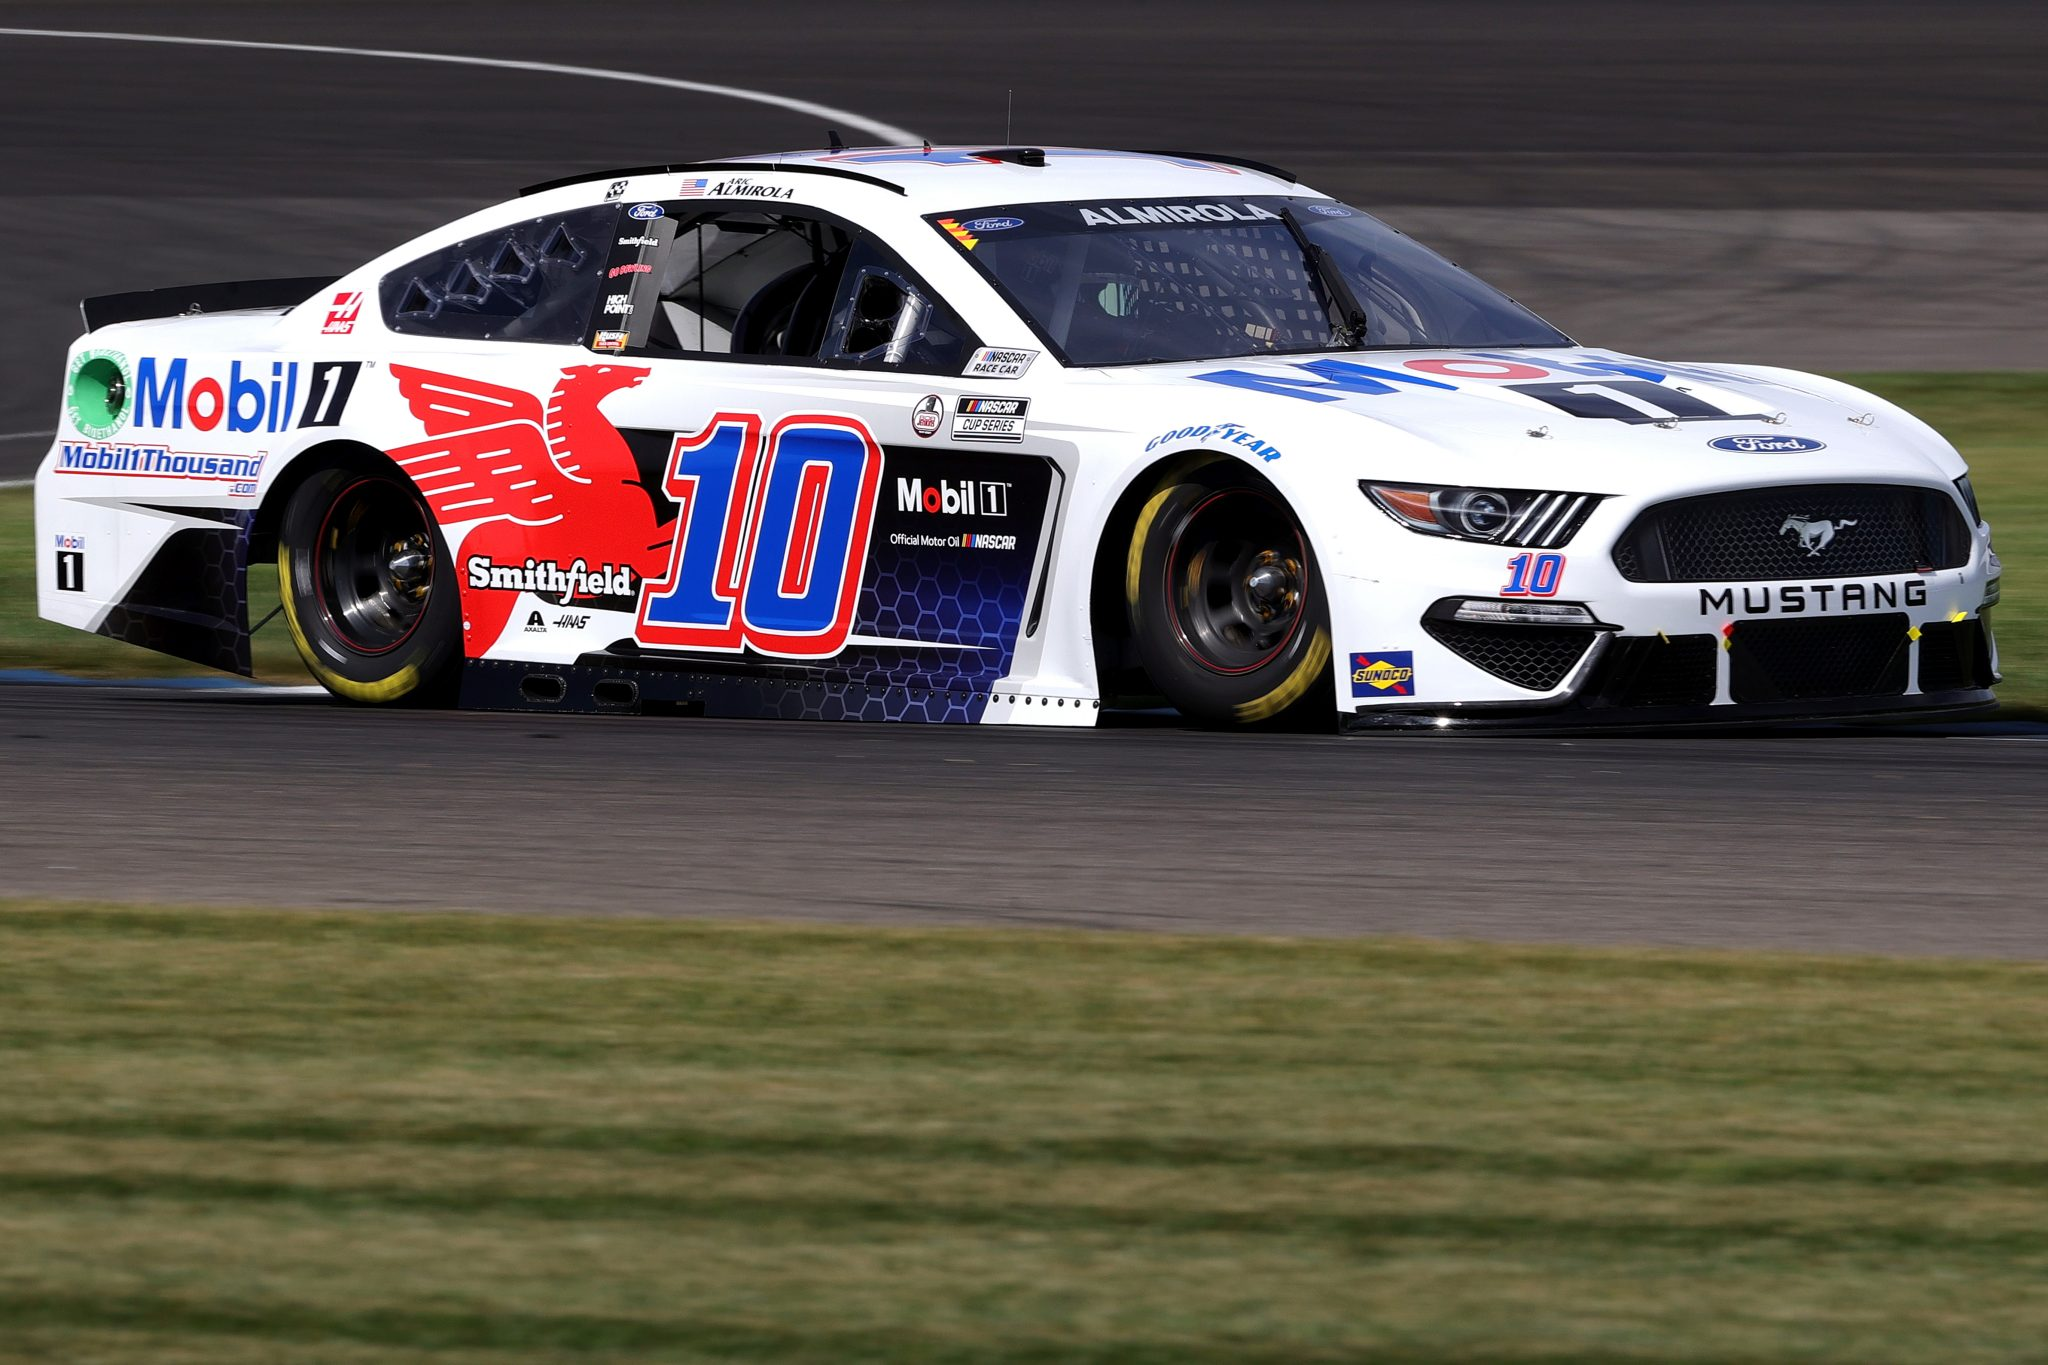 INDIANAPOLIS, INDIANA - AUGUST 14: Aric Almirola, driver of the #10 Mobil 1 Ford, drives during practice for the NASCAR Cup Series Verizon 200 at the Brickyard at Indianapolis Motor Speedway on August 14, 2021 in Indianapolis, Indiana. (Photo by Stacy Revere/Getty Images)   Getty Images